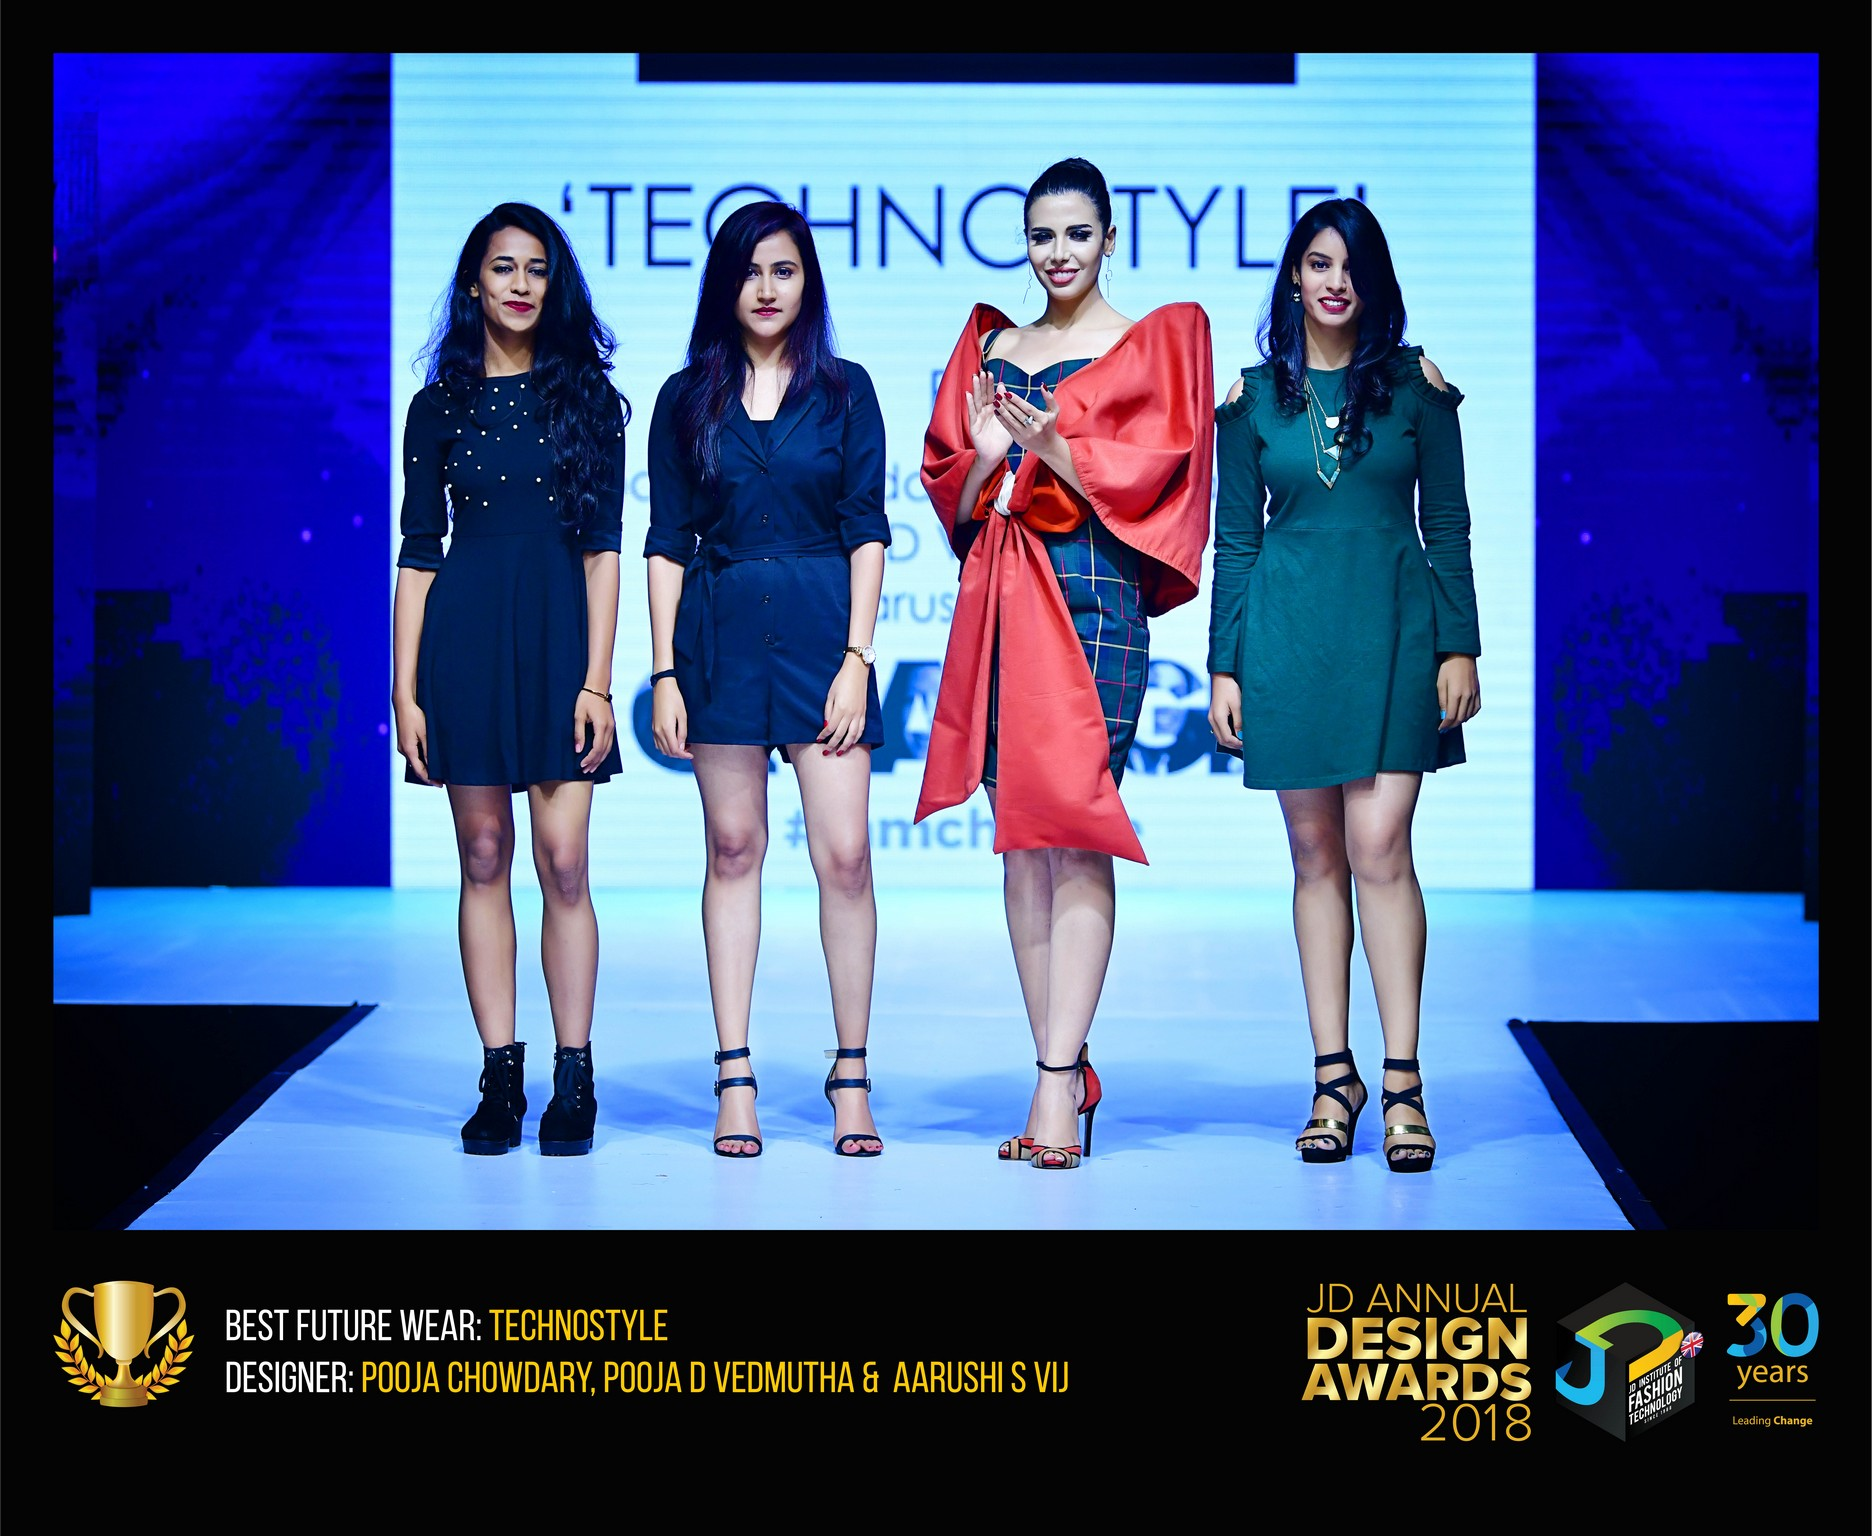 Techno style – Change – JD Annual Design Awards 2018 | Designer: M. Pooja, Pooja.D | Photography : Jerin Nath (@jerin_nath) techno style - Technostyle7 - Techno style – Change – JD Annual Design Awards 2018